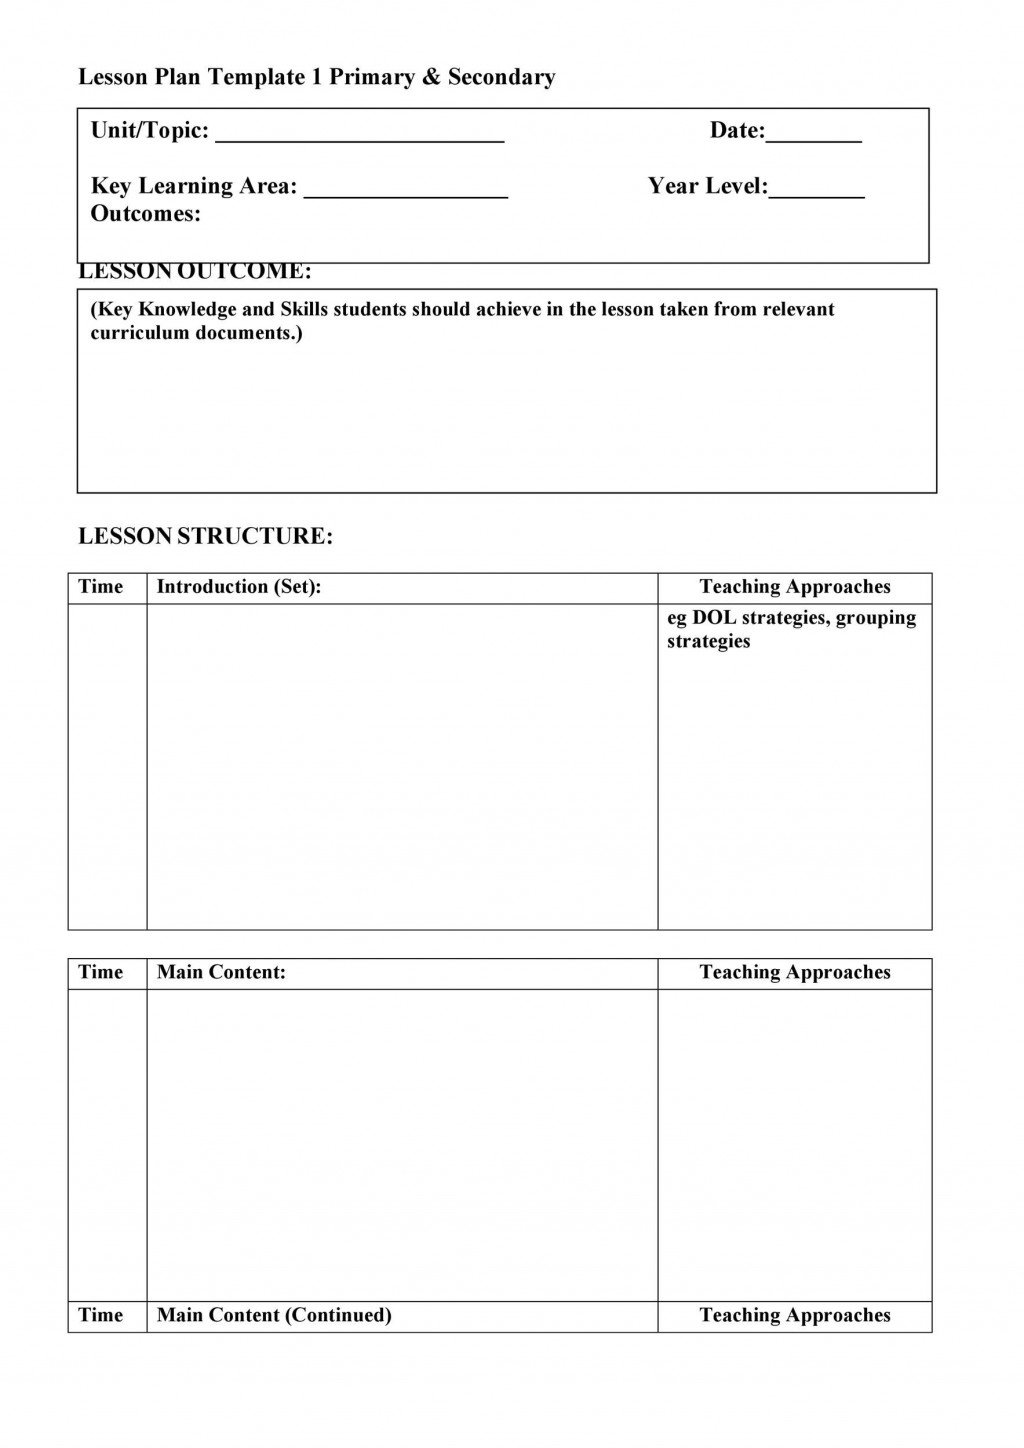 006 Fascinating Free Printable Lesson Plan Template Concept  Preschool Weekly For KindergartenLarge